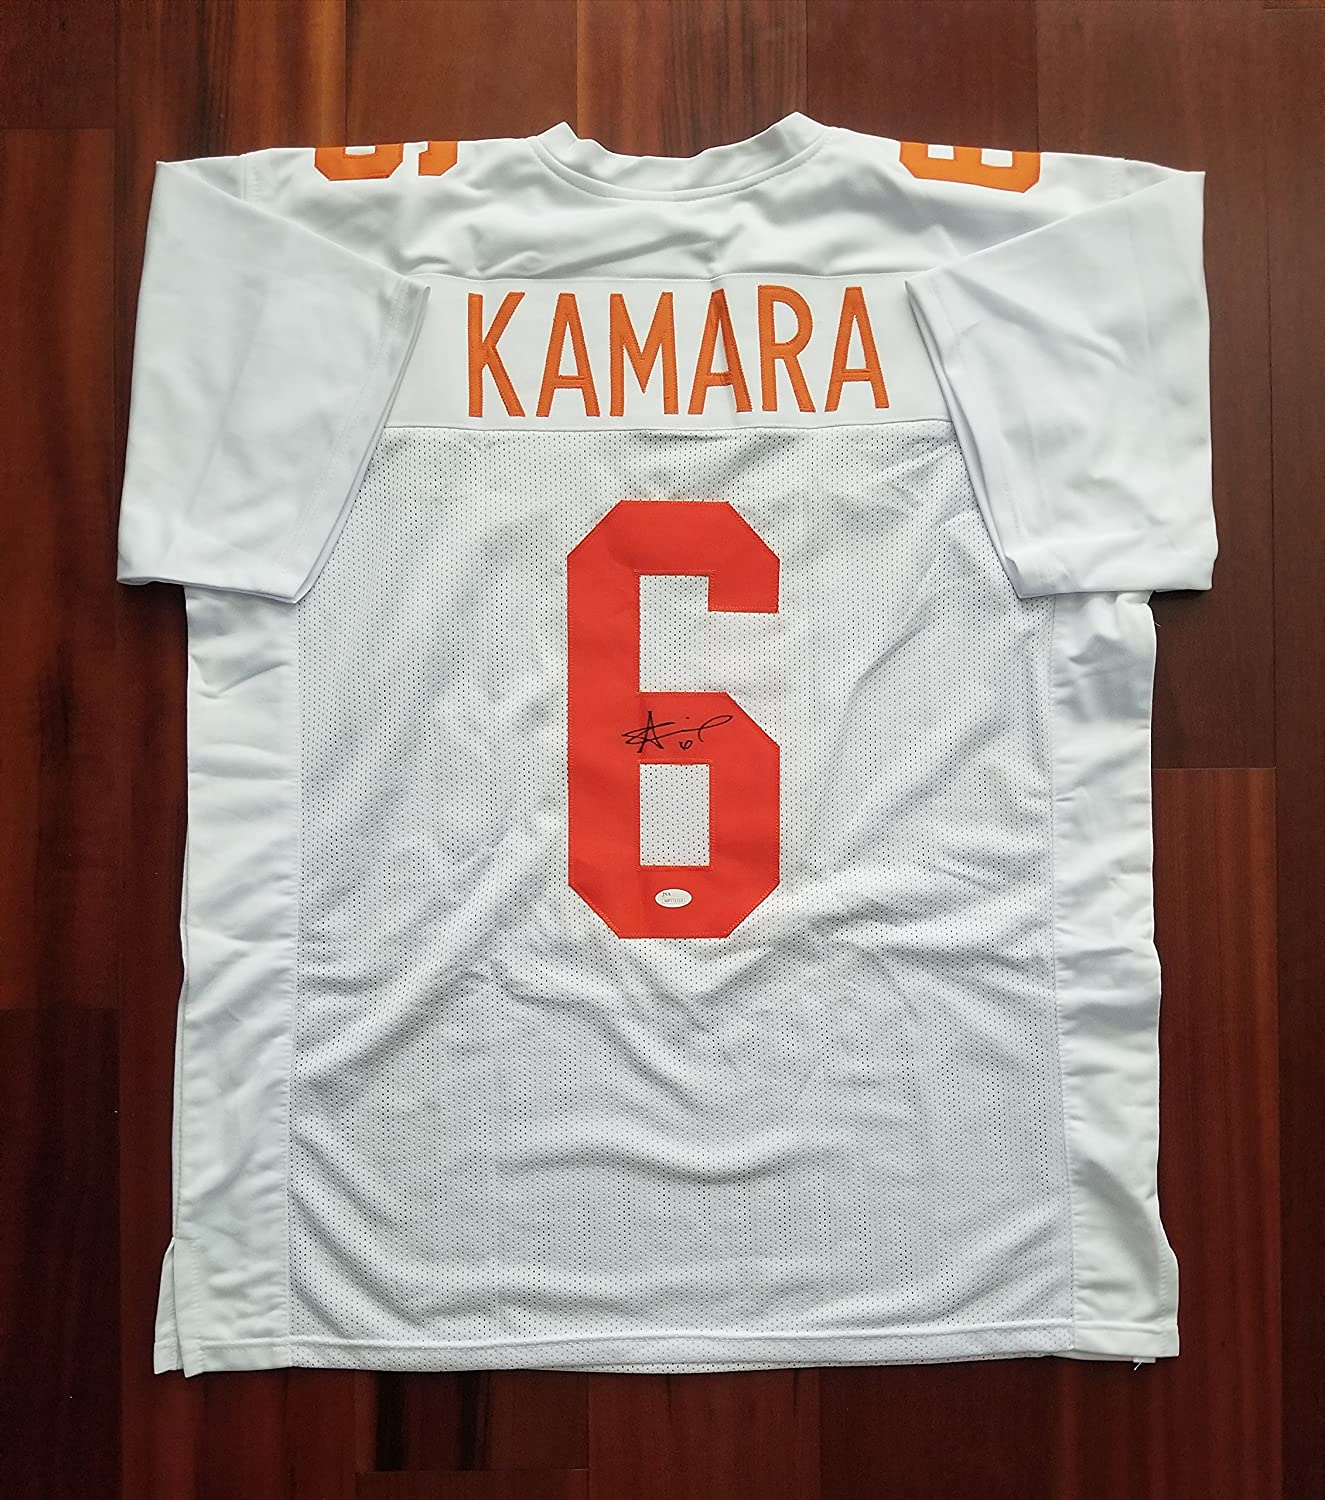 hot sale online 06301 85584 Alvin Kamara Autographed Signed Jersey Tennessee Volunteers ...